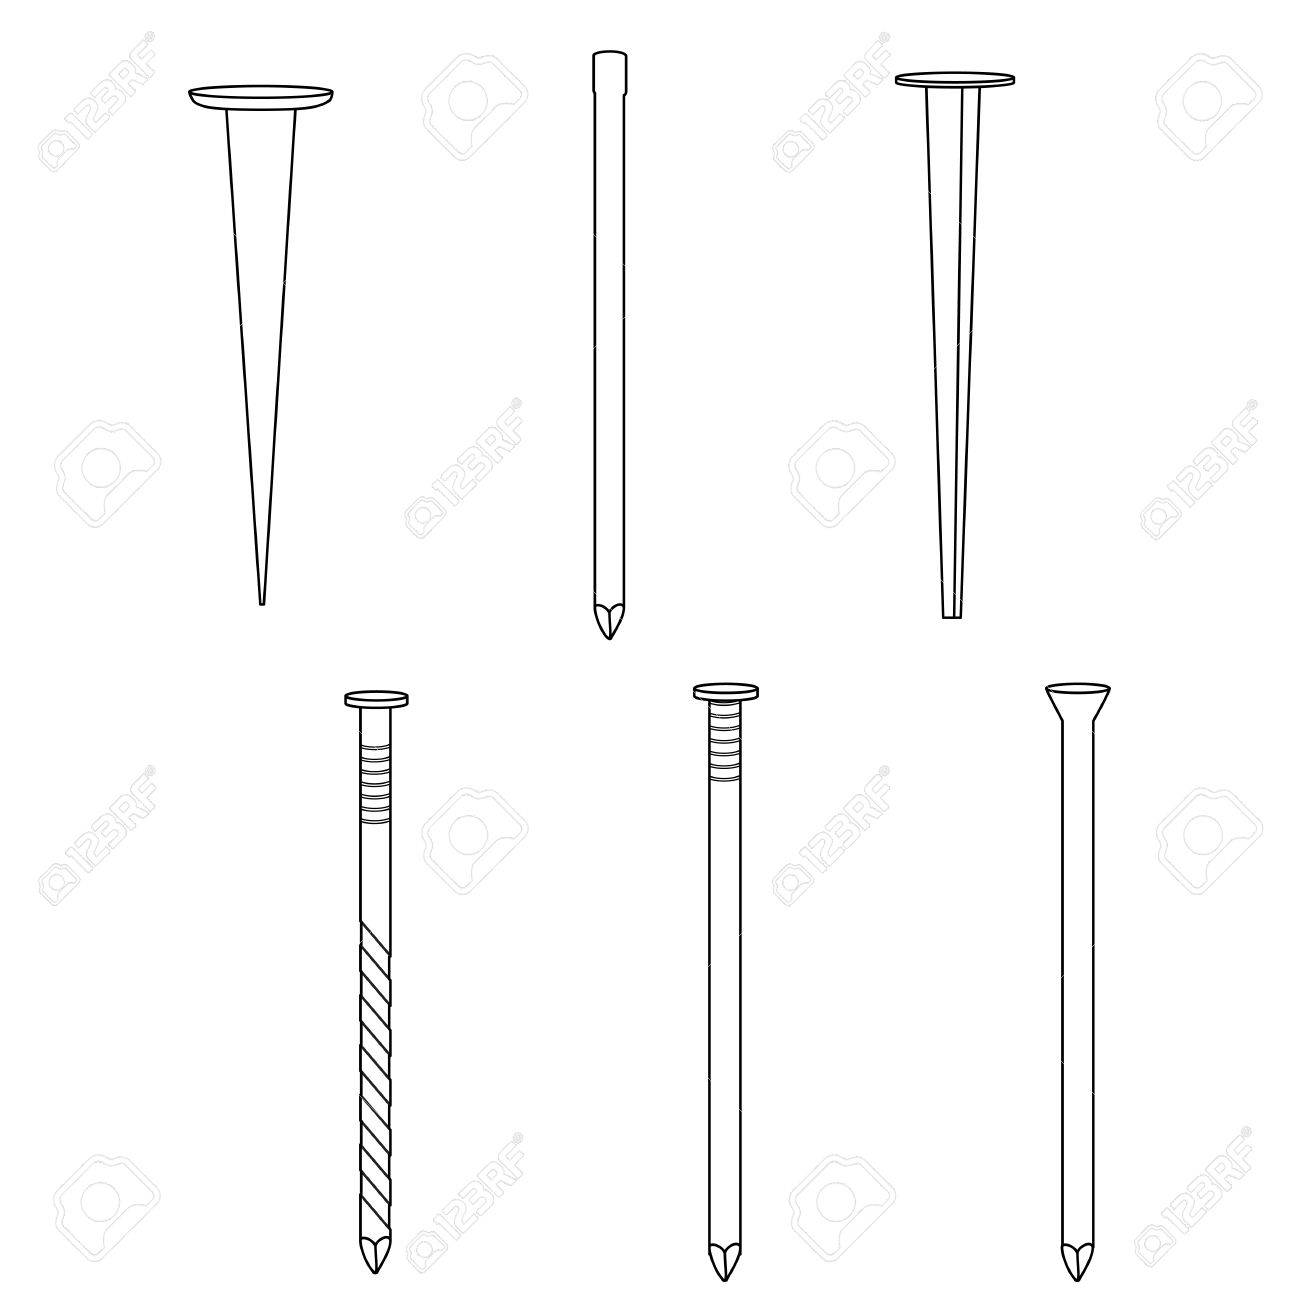 Set Of Different Kinds Of Nails Common Nail, Cut Nail, Finishing ...